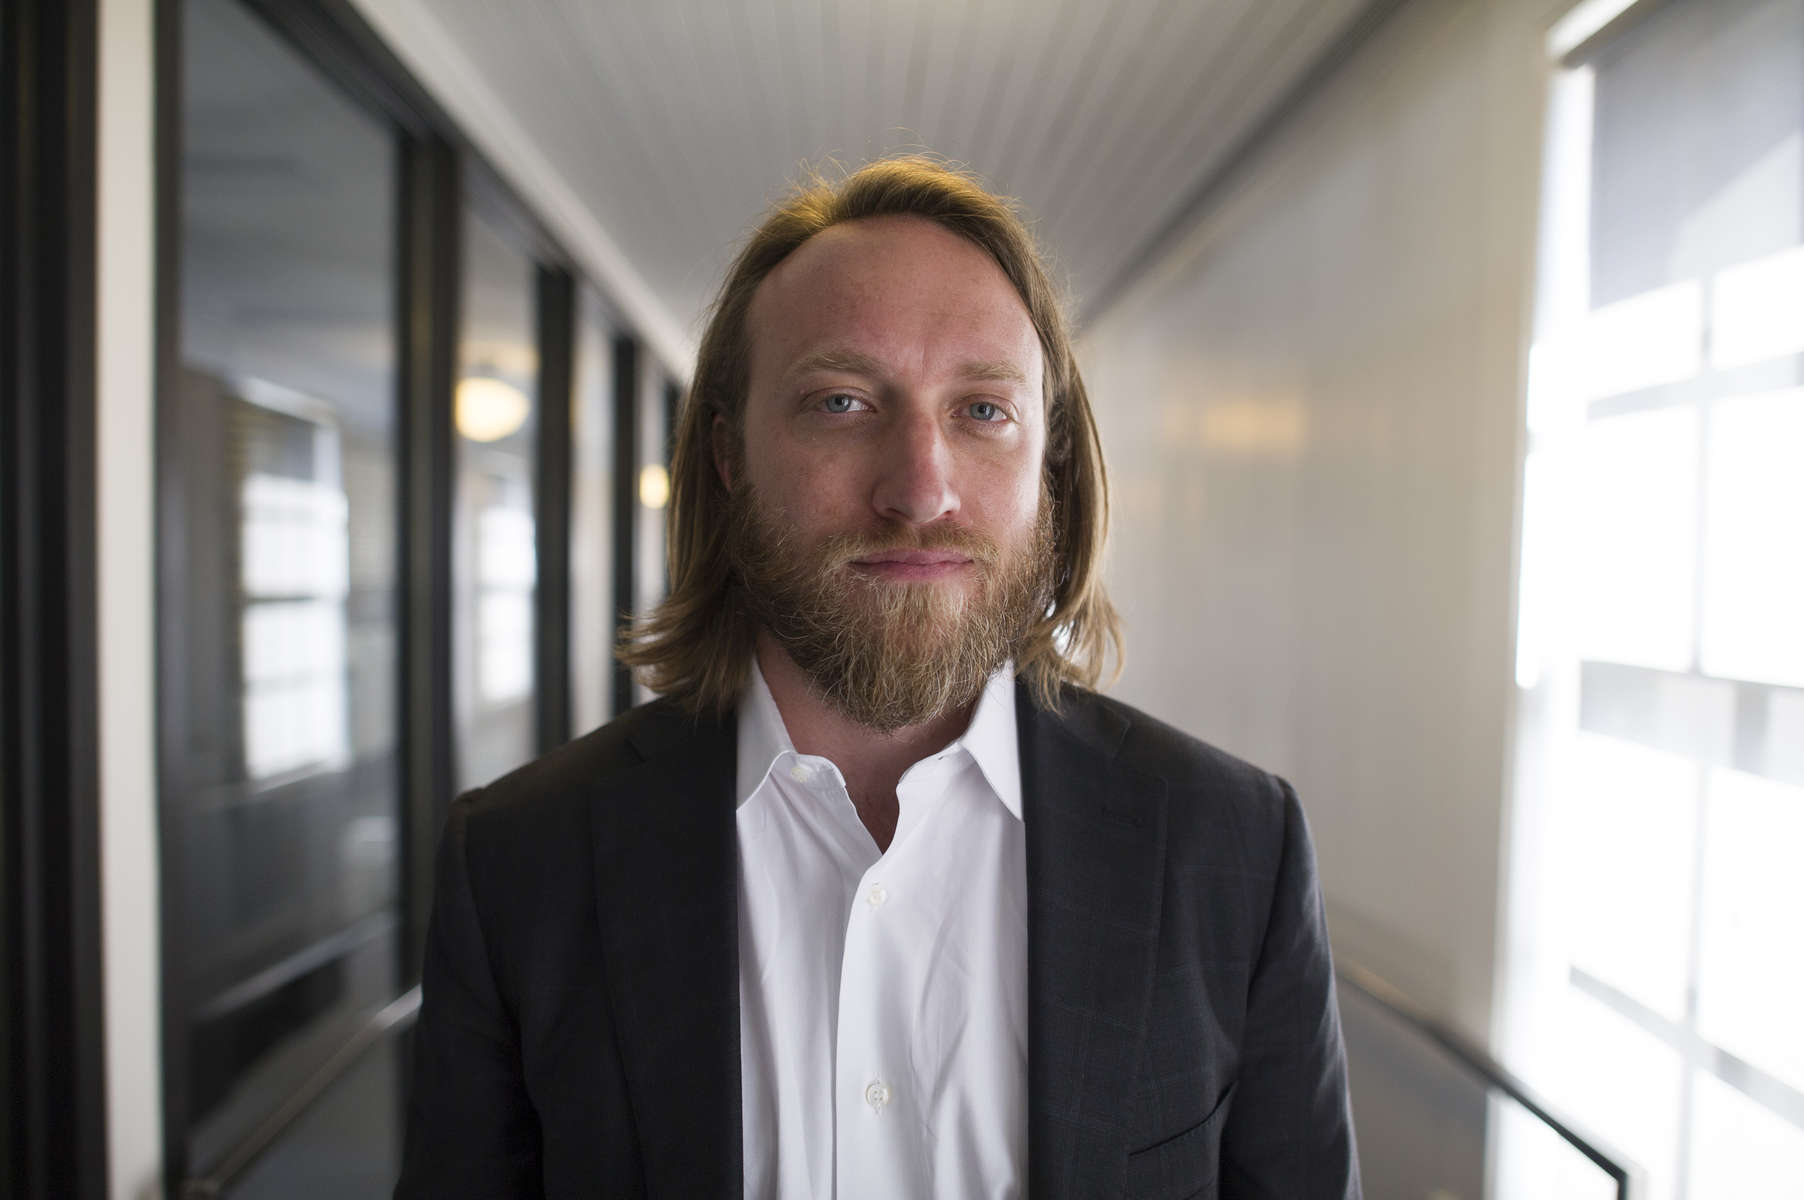 Chad Hurley, co-founder of YouTube, who also co-founded AVOS Systems Inc., and Mixbit, stands for a photograph in San Francsico, California on Thursday, Aug. 22, 2013.